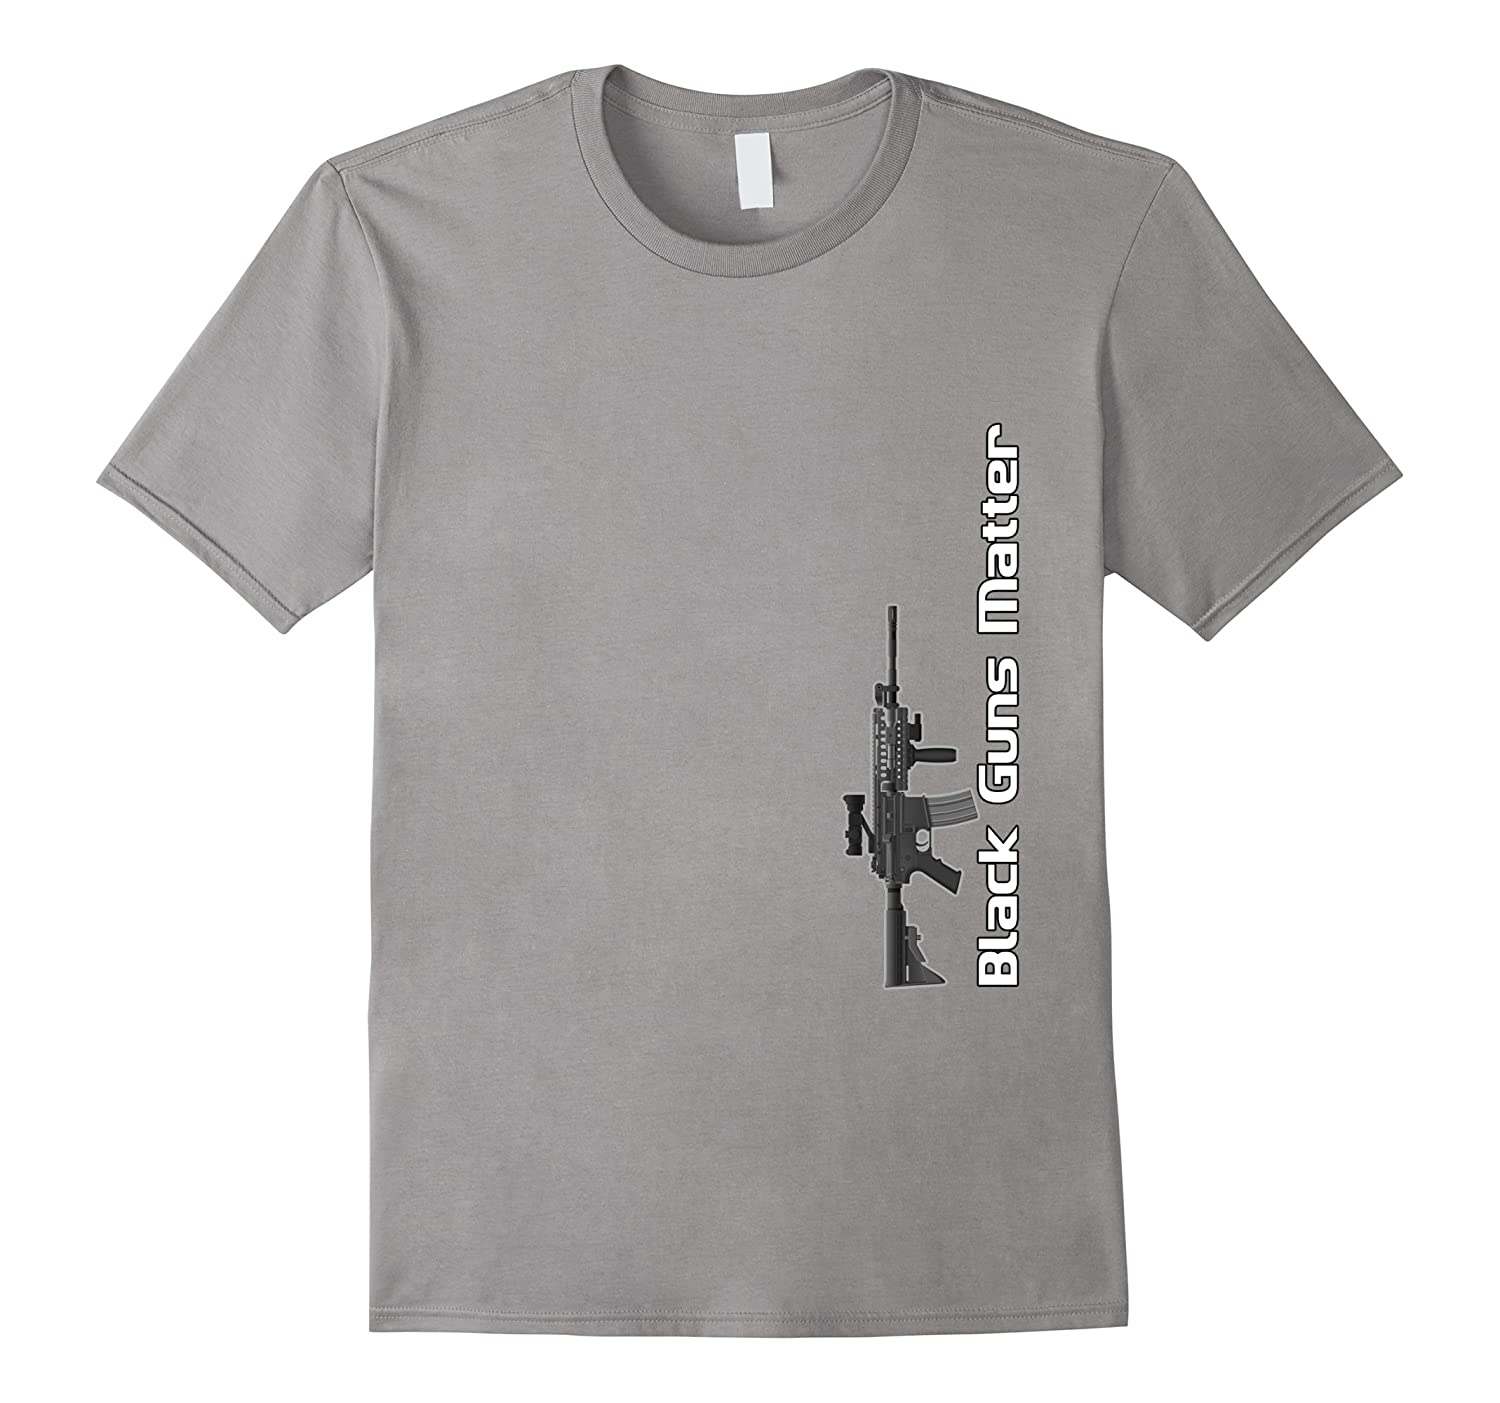 Black Guns Matter T-shirt by Zany Brainy  Handguns Firearms-TD